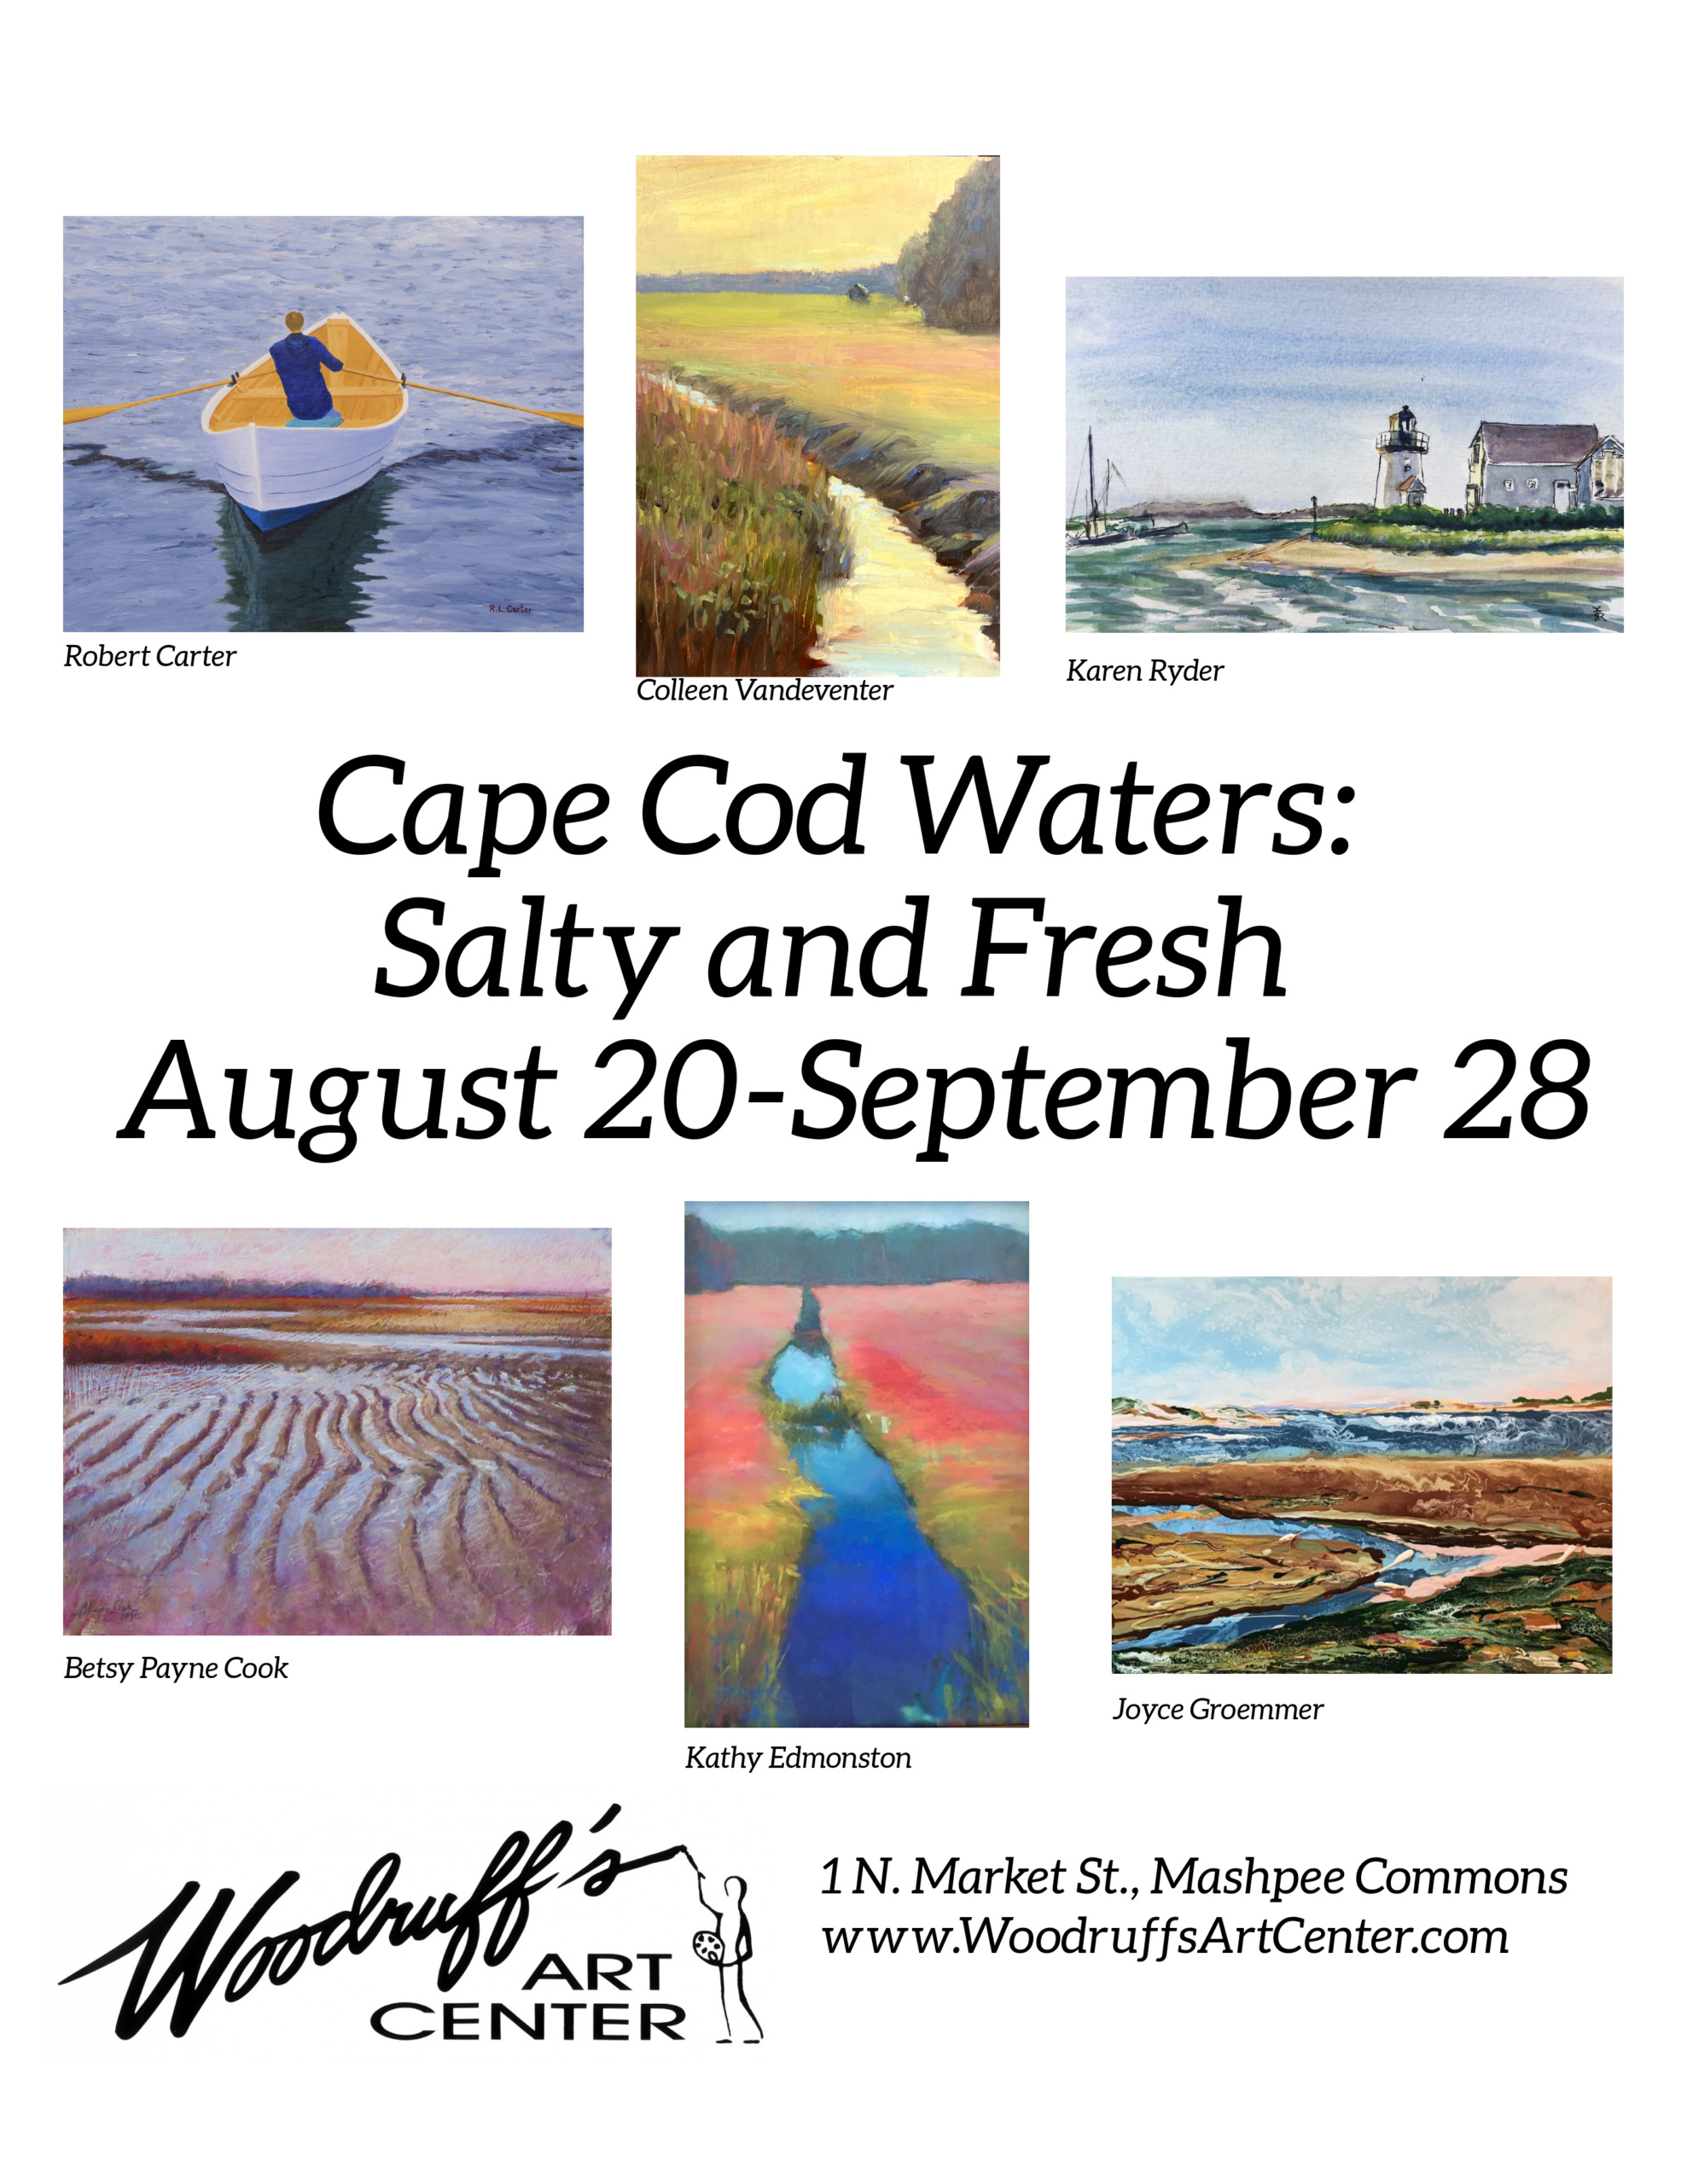 Cape Cod Waters: Salty and Fresh